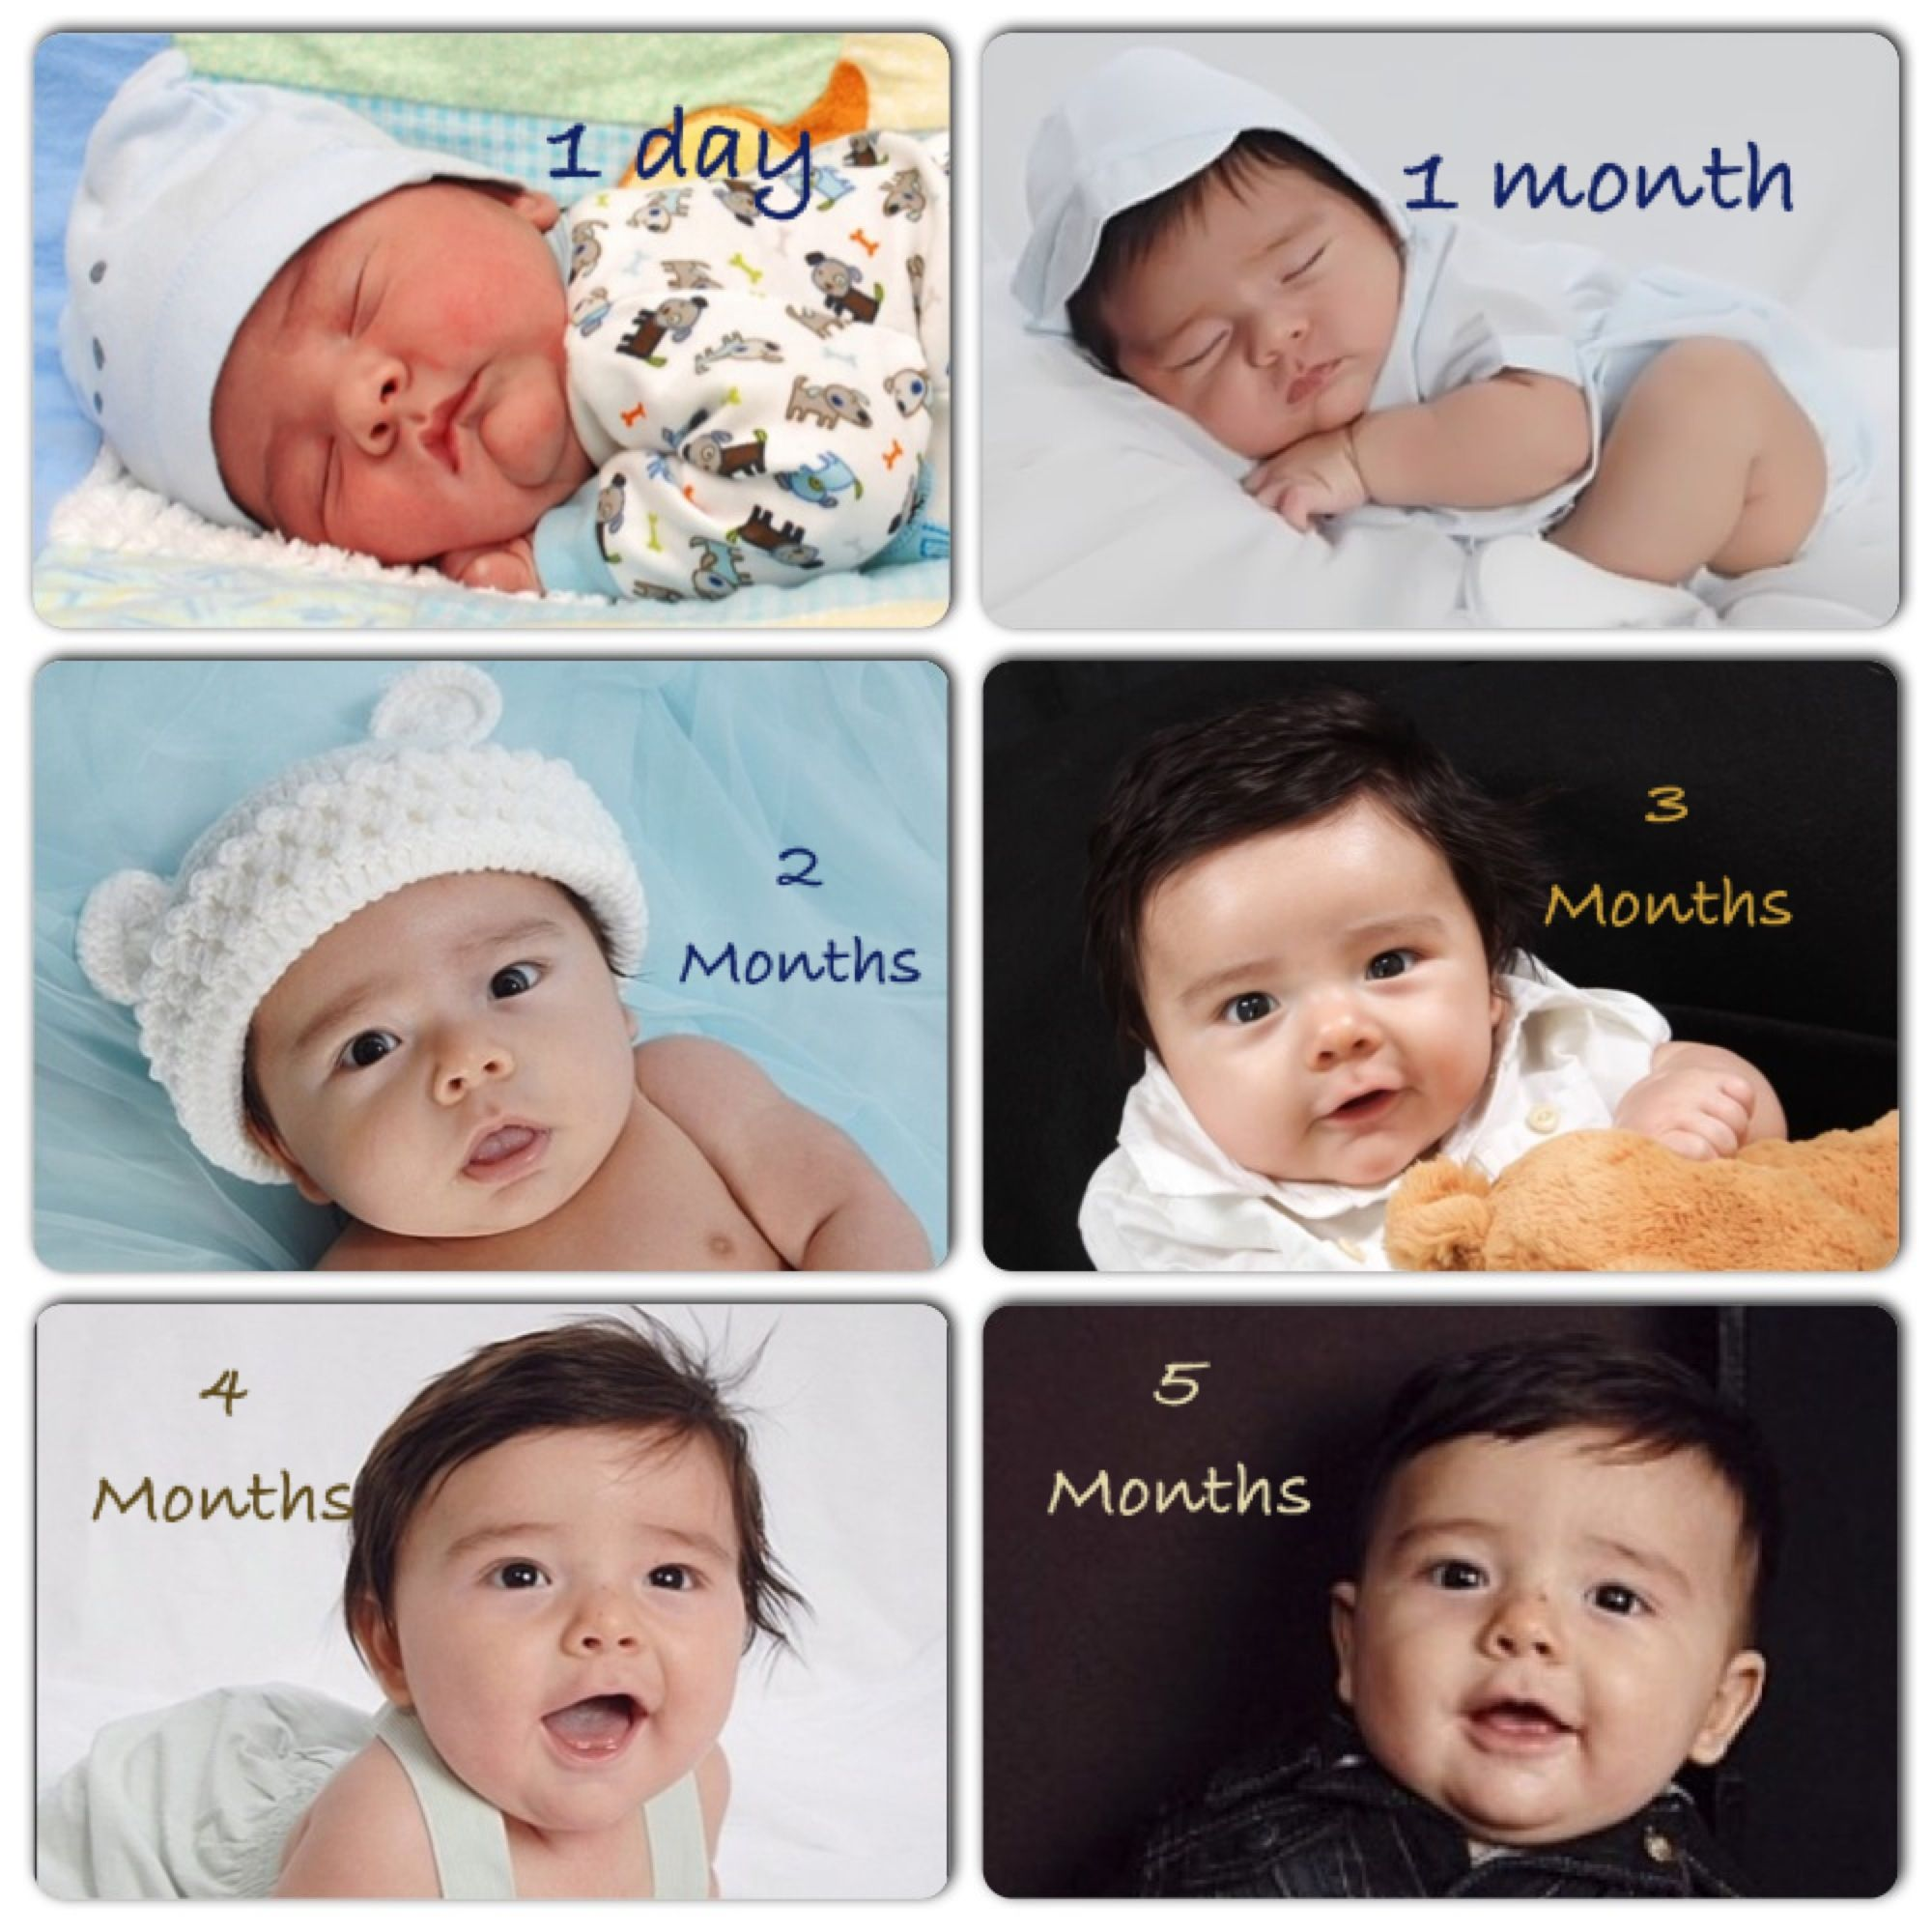 Pin By Yalitza Castaneda On Cute Babies Cute Baby Pictures Cute Baby Photos Newborn Baby Photos